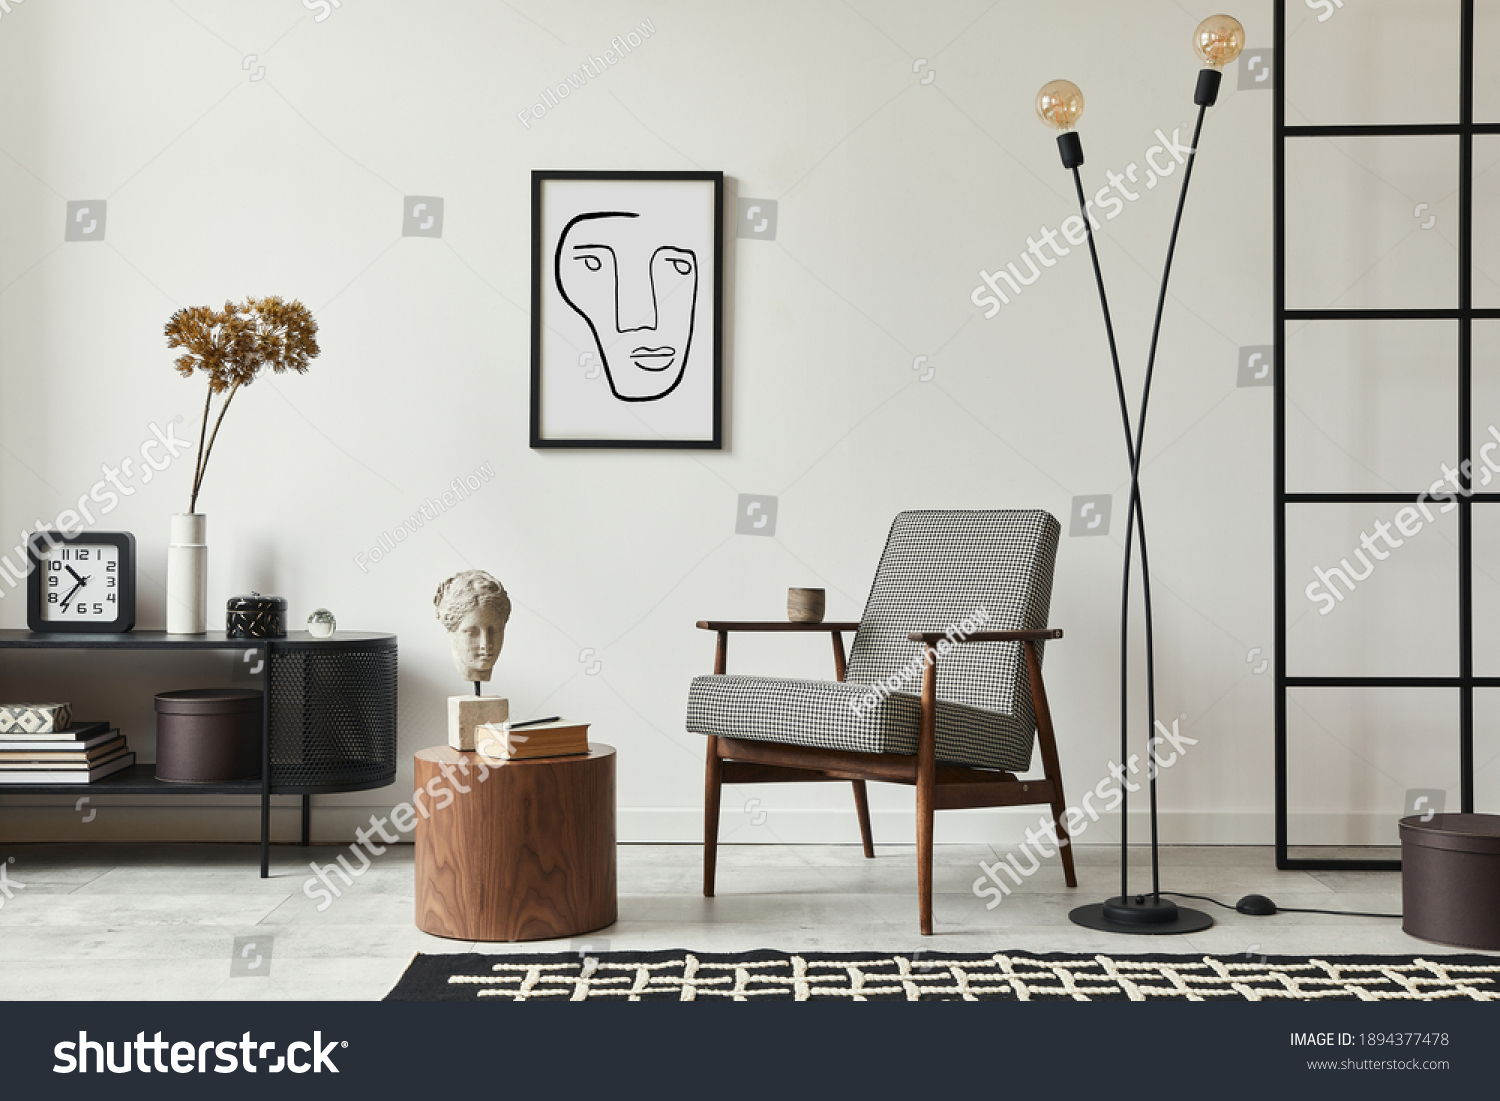 Stylish scandinavian composition of living room with design armchair, black mock up poster frame, commode, wooden stool, book, decoration, loft wall and personal accessories in modern home decor. #1894377478